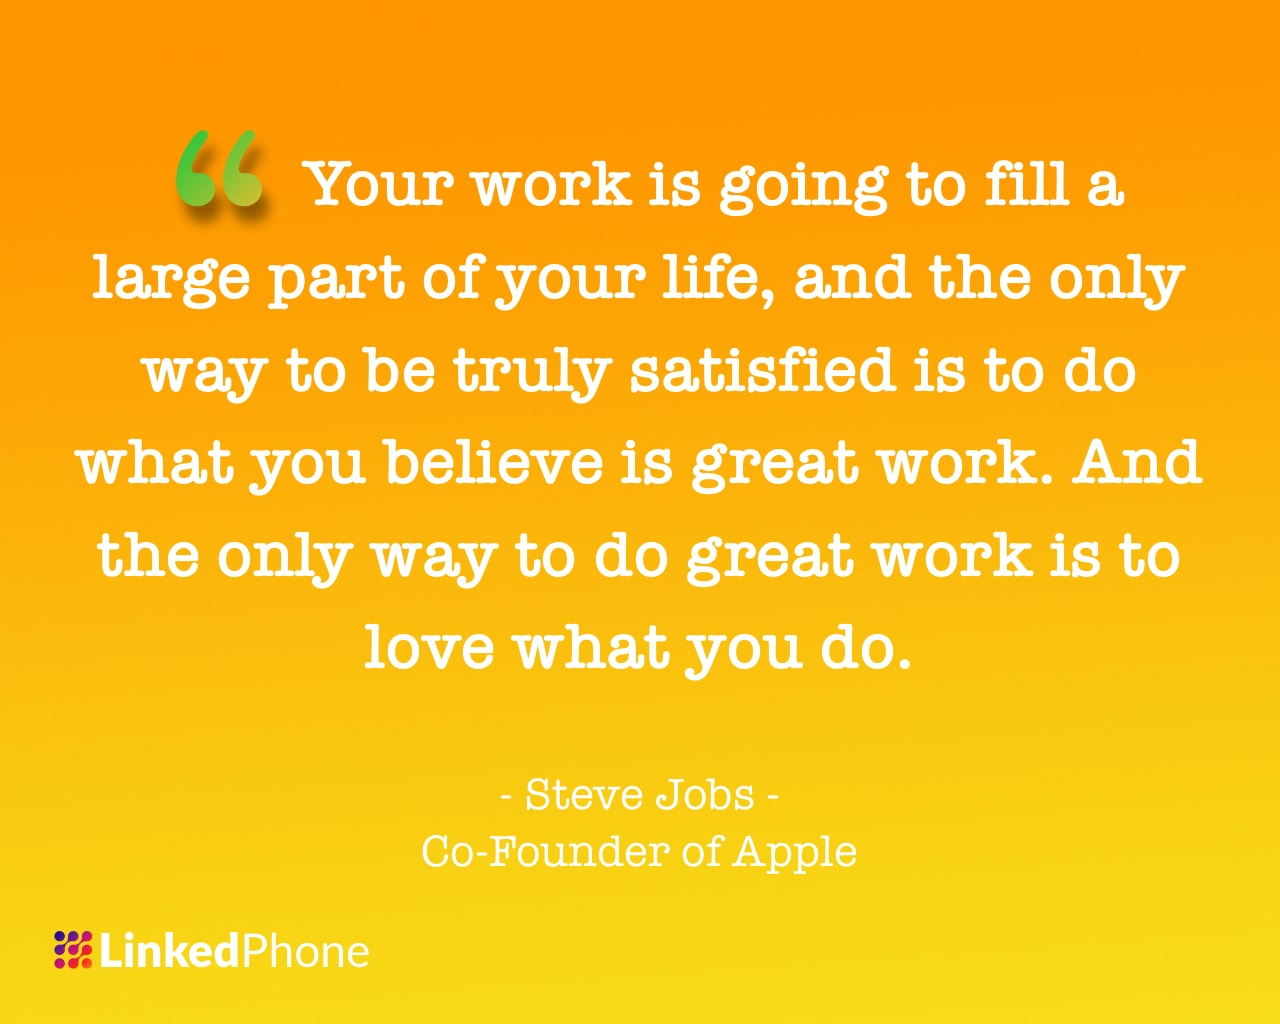 Steve Jobs Motivational Inspirational Quotes and Sayings